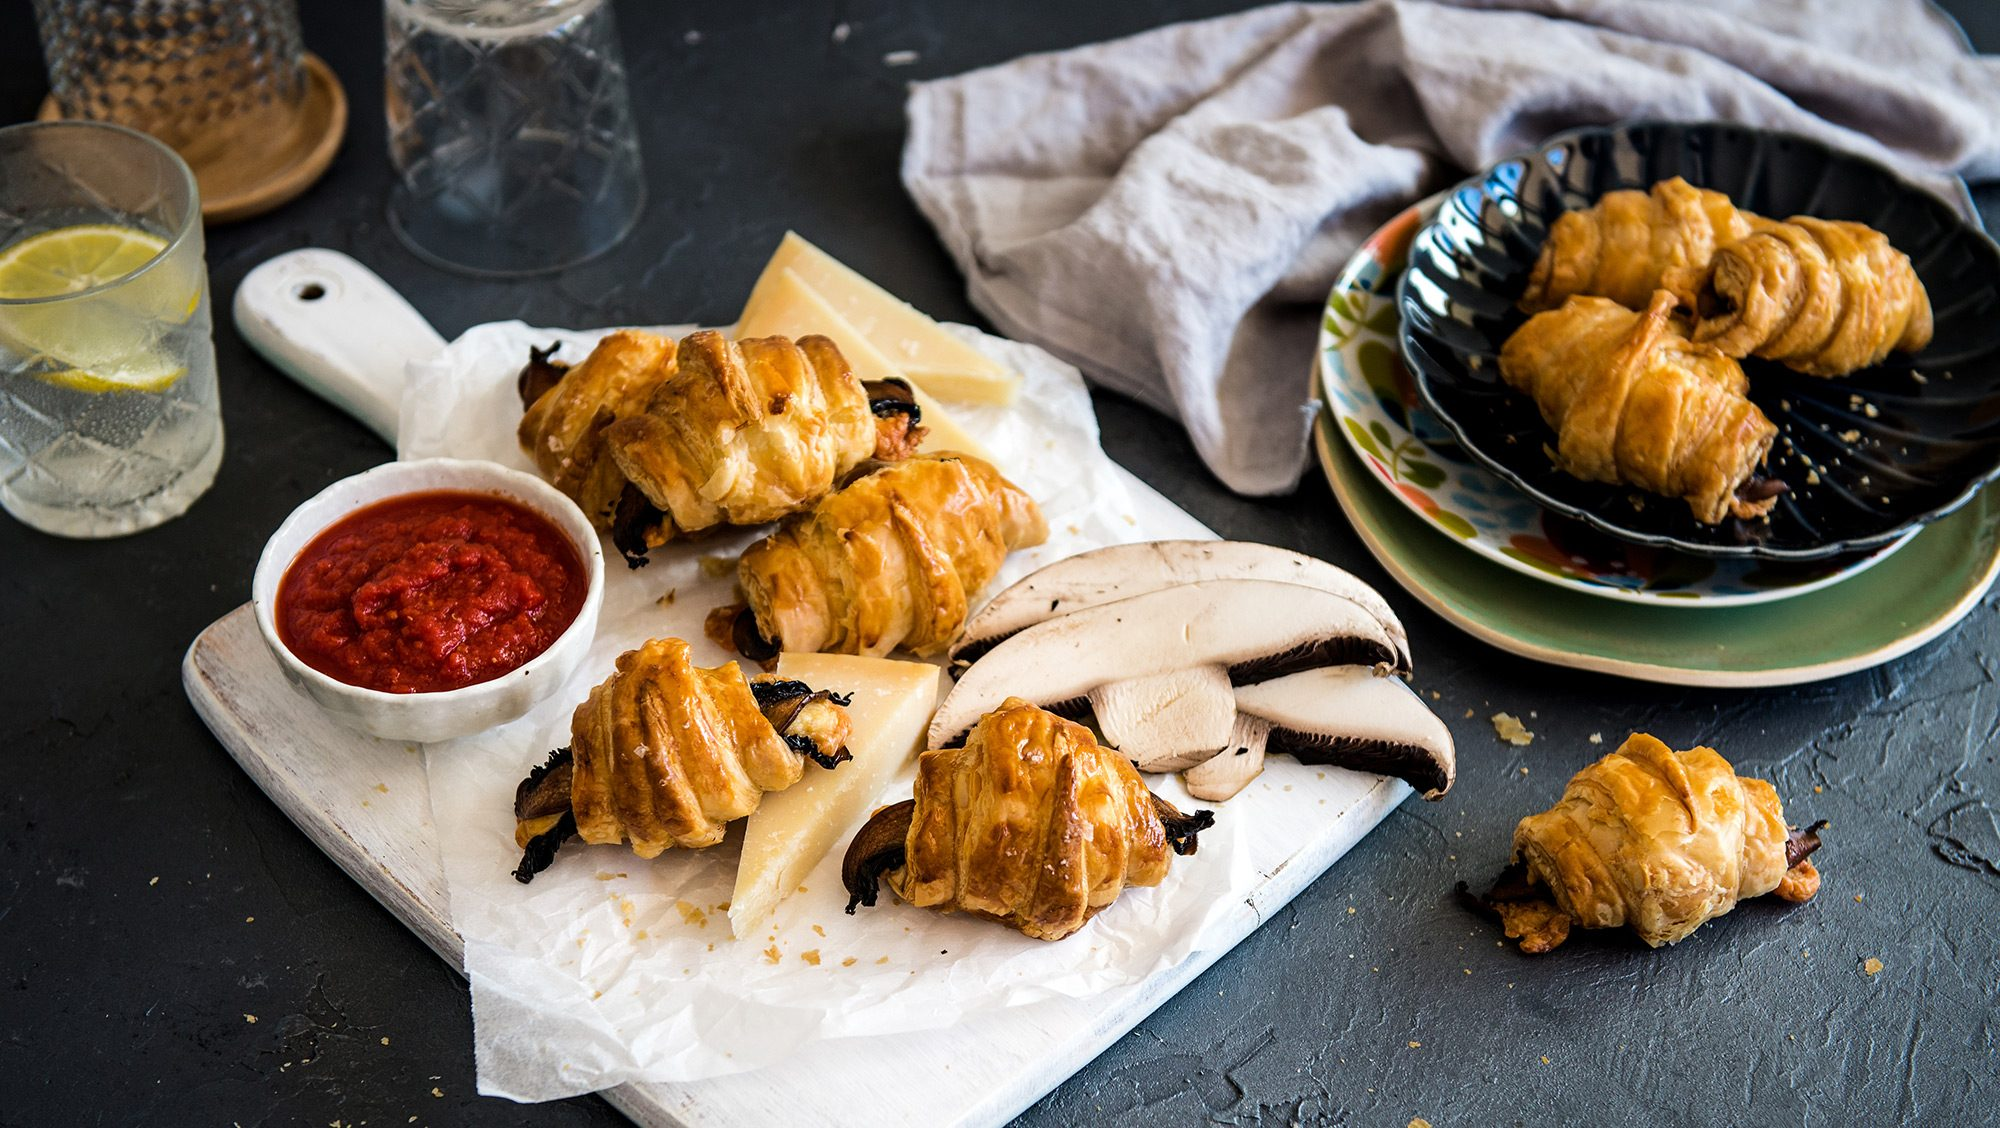 Miguel's One Roll Wonder, Mushroom and Cheese Croissants